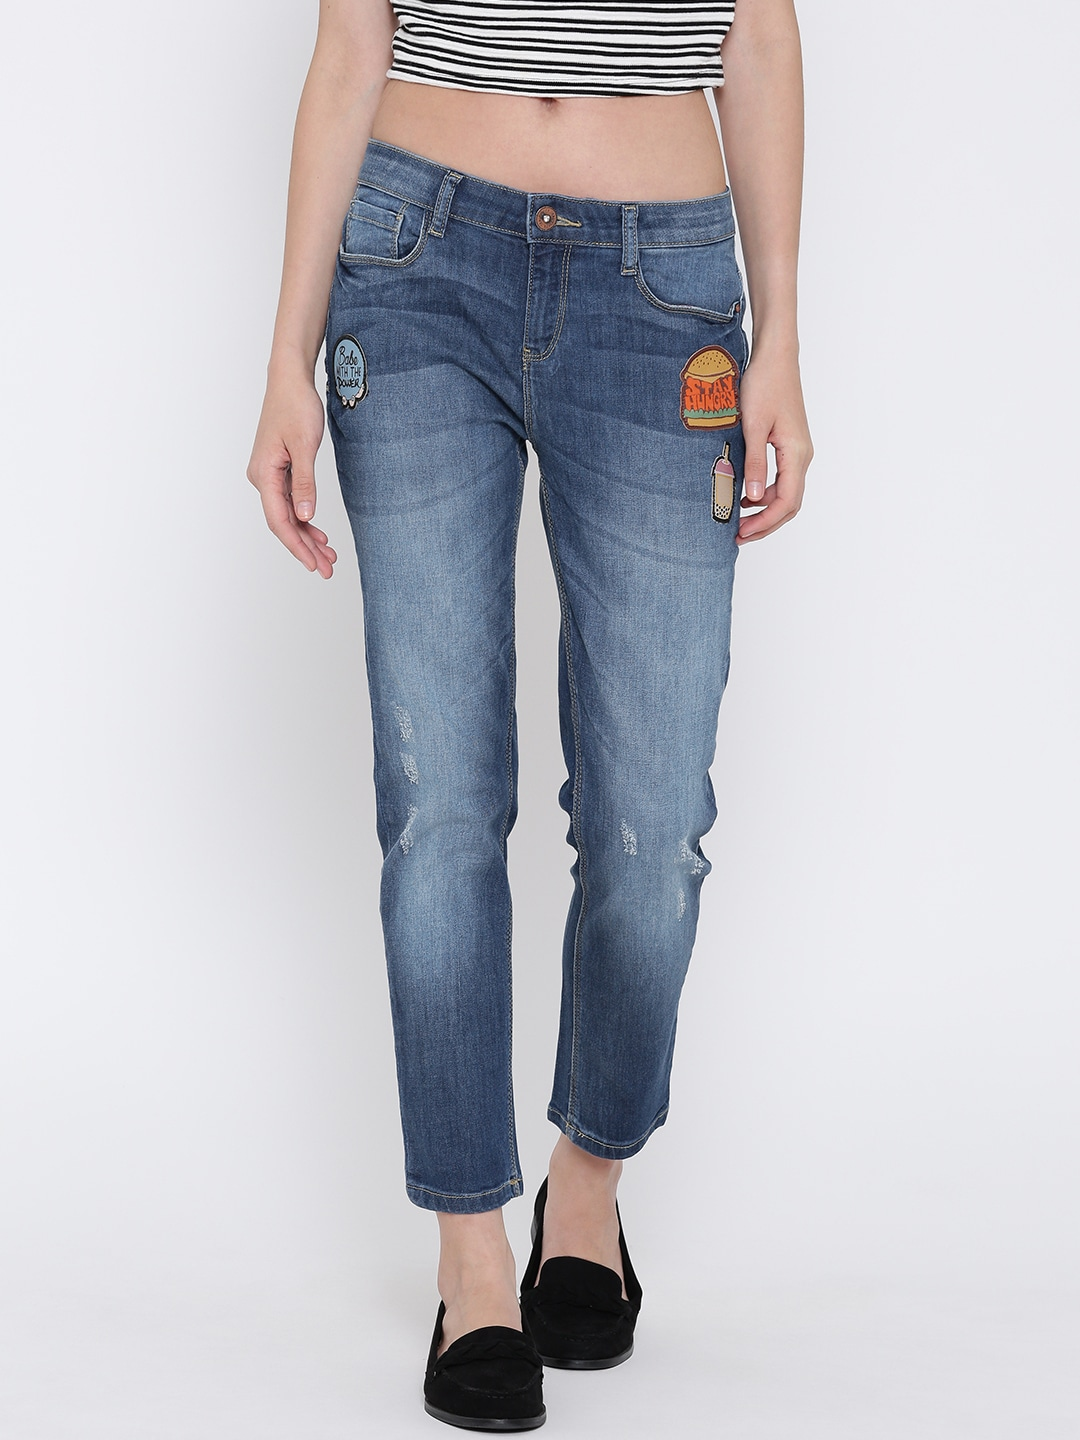 Faded Glory Stretch Jeans Elastic Waist